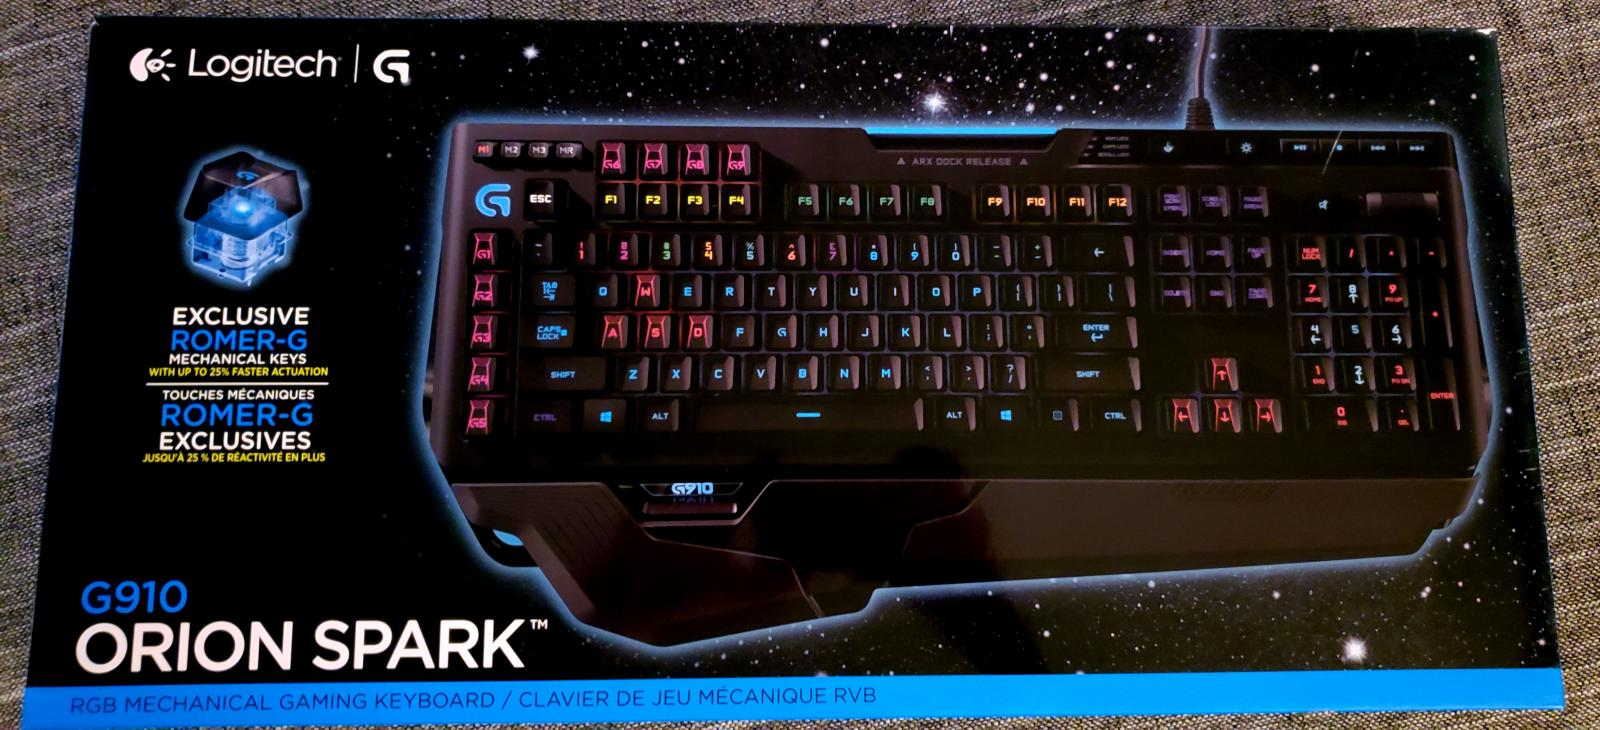 Photo of Logitech G910 Orion Spark RGB mechanical keyboard